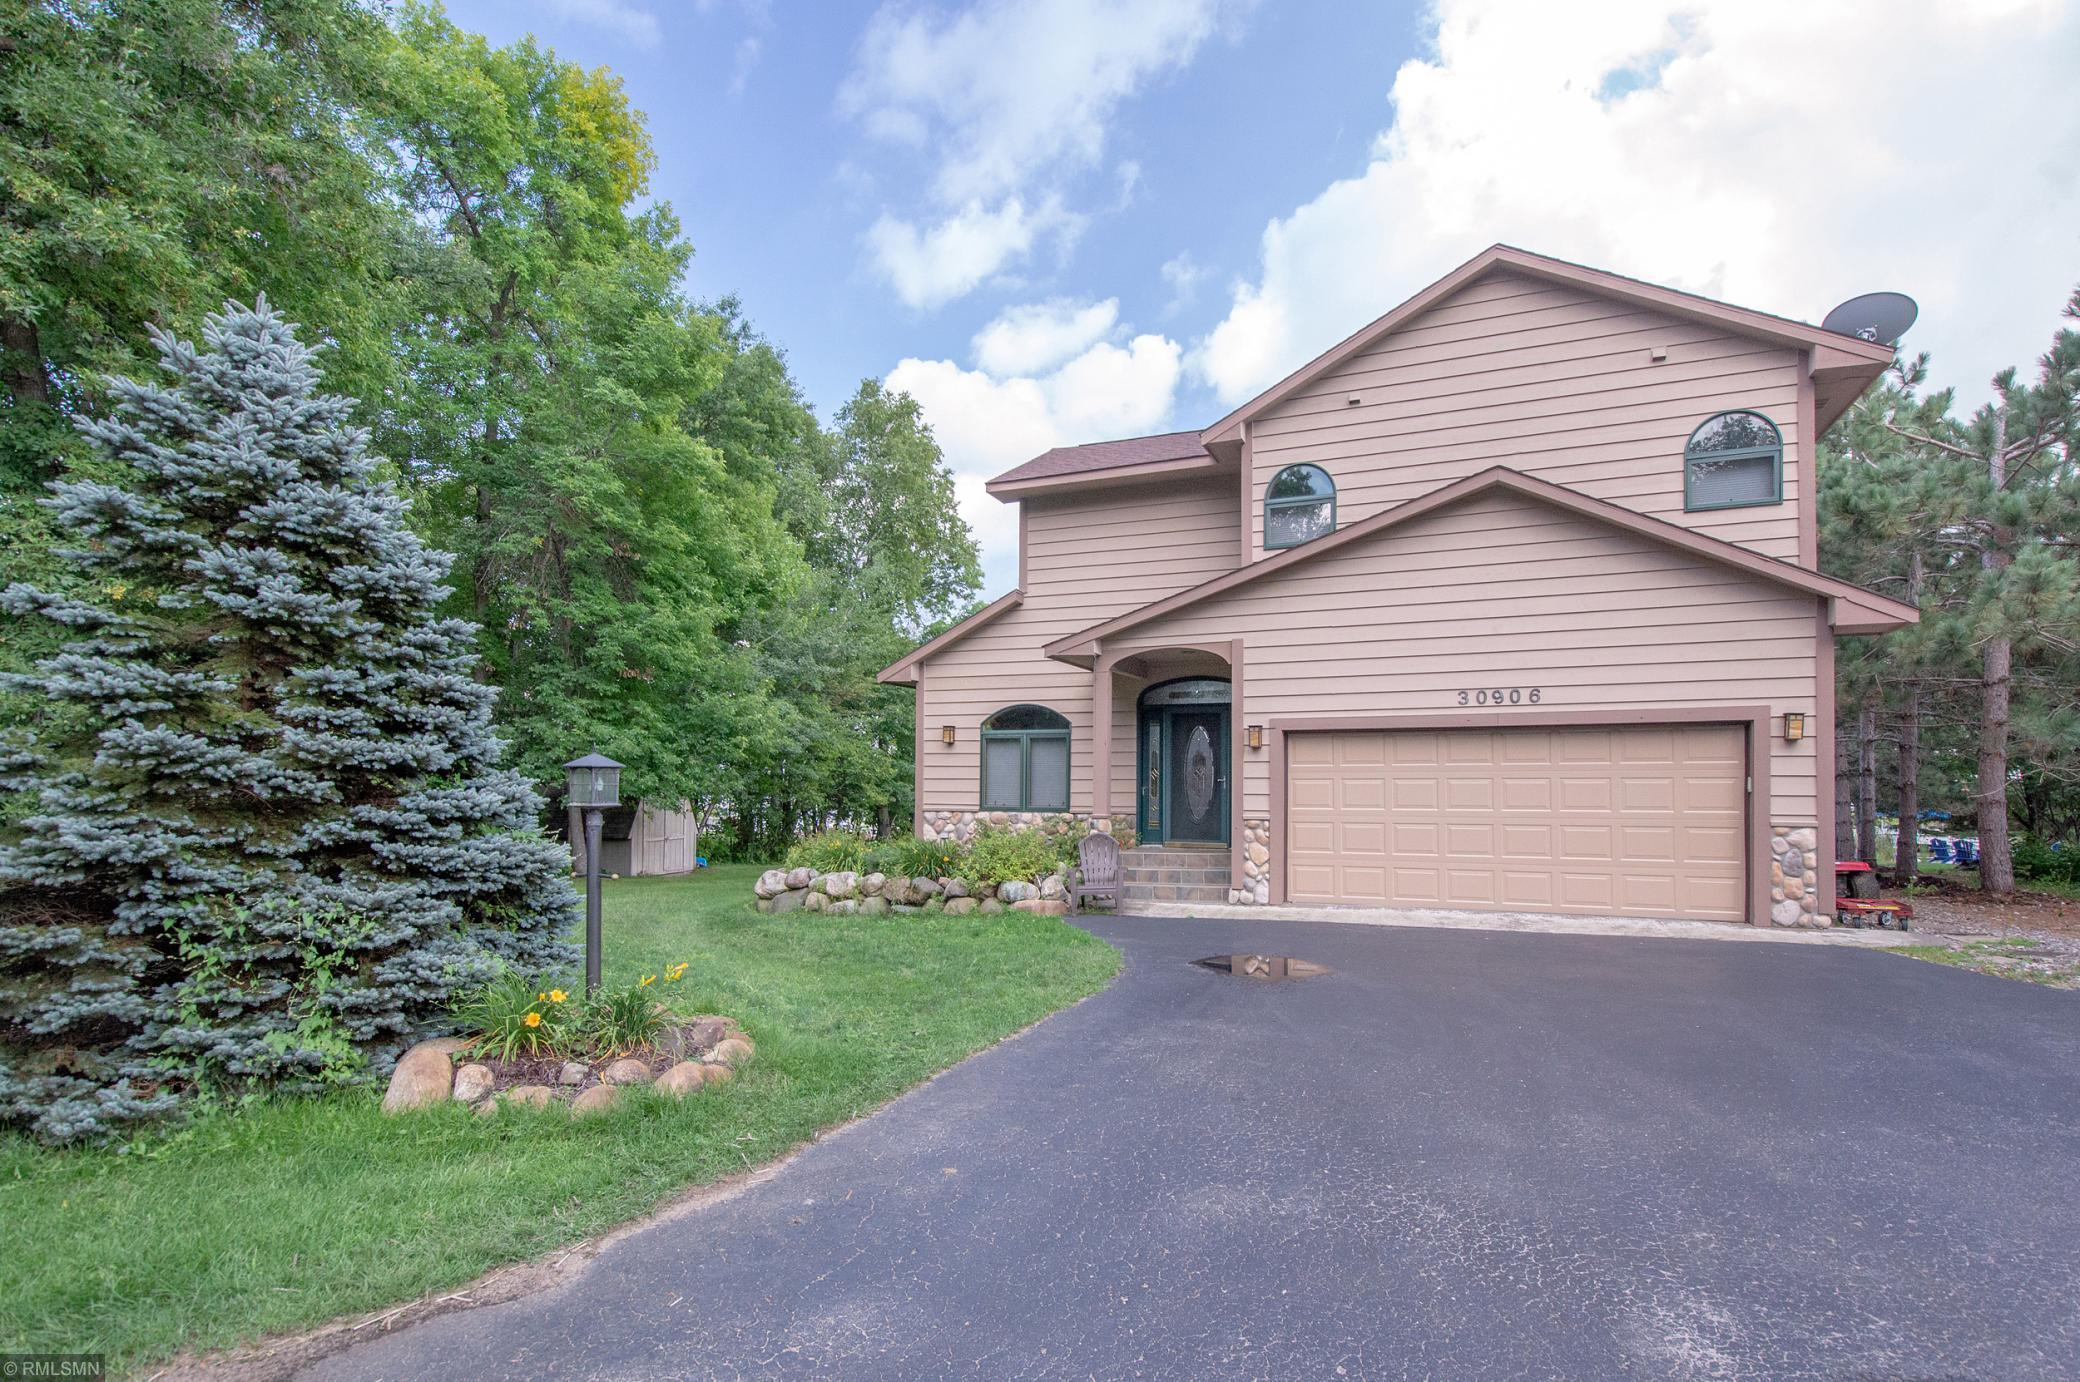 30906 N Lakeview Drive Property Photo - Breezy Point, MN real estate listing